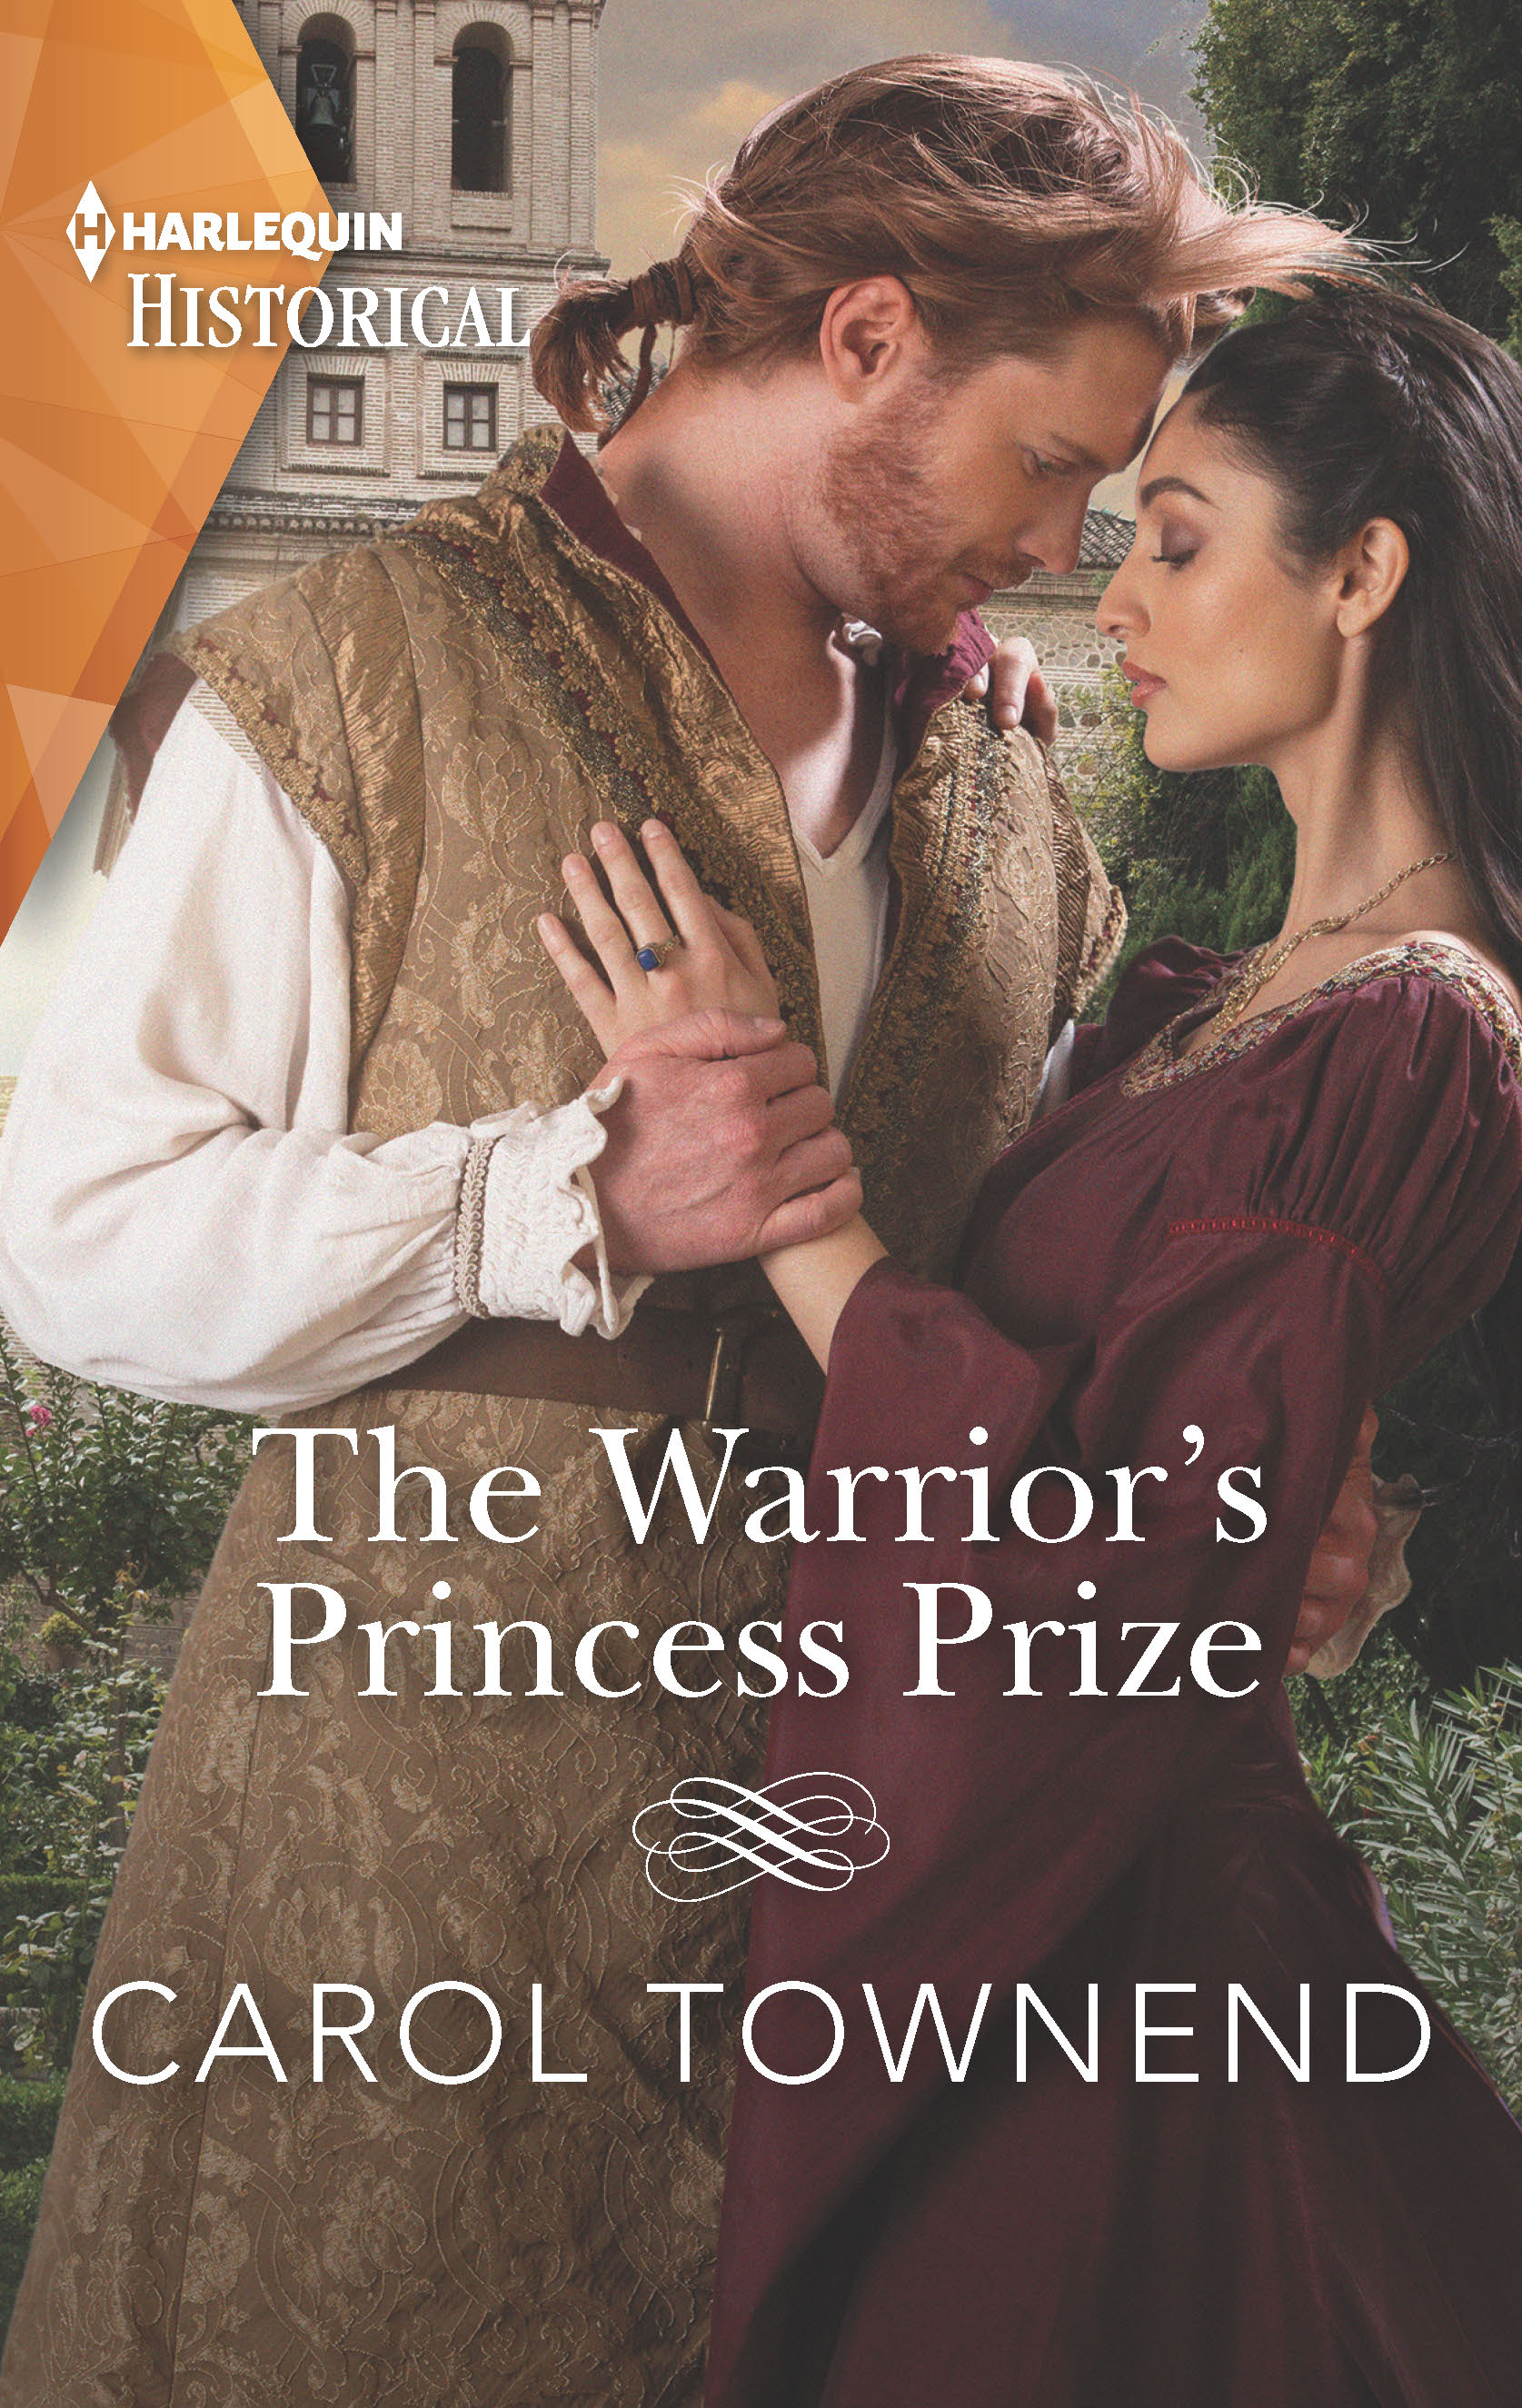 [PDF] [EPUB] The Warrior's Princess Prize (Princesses of the Alhambra #3) Download by Carol Townend